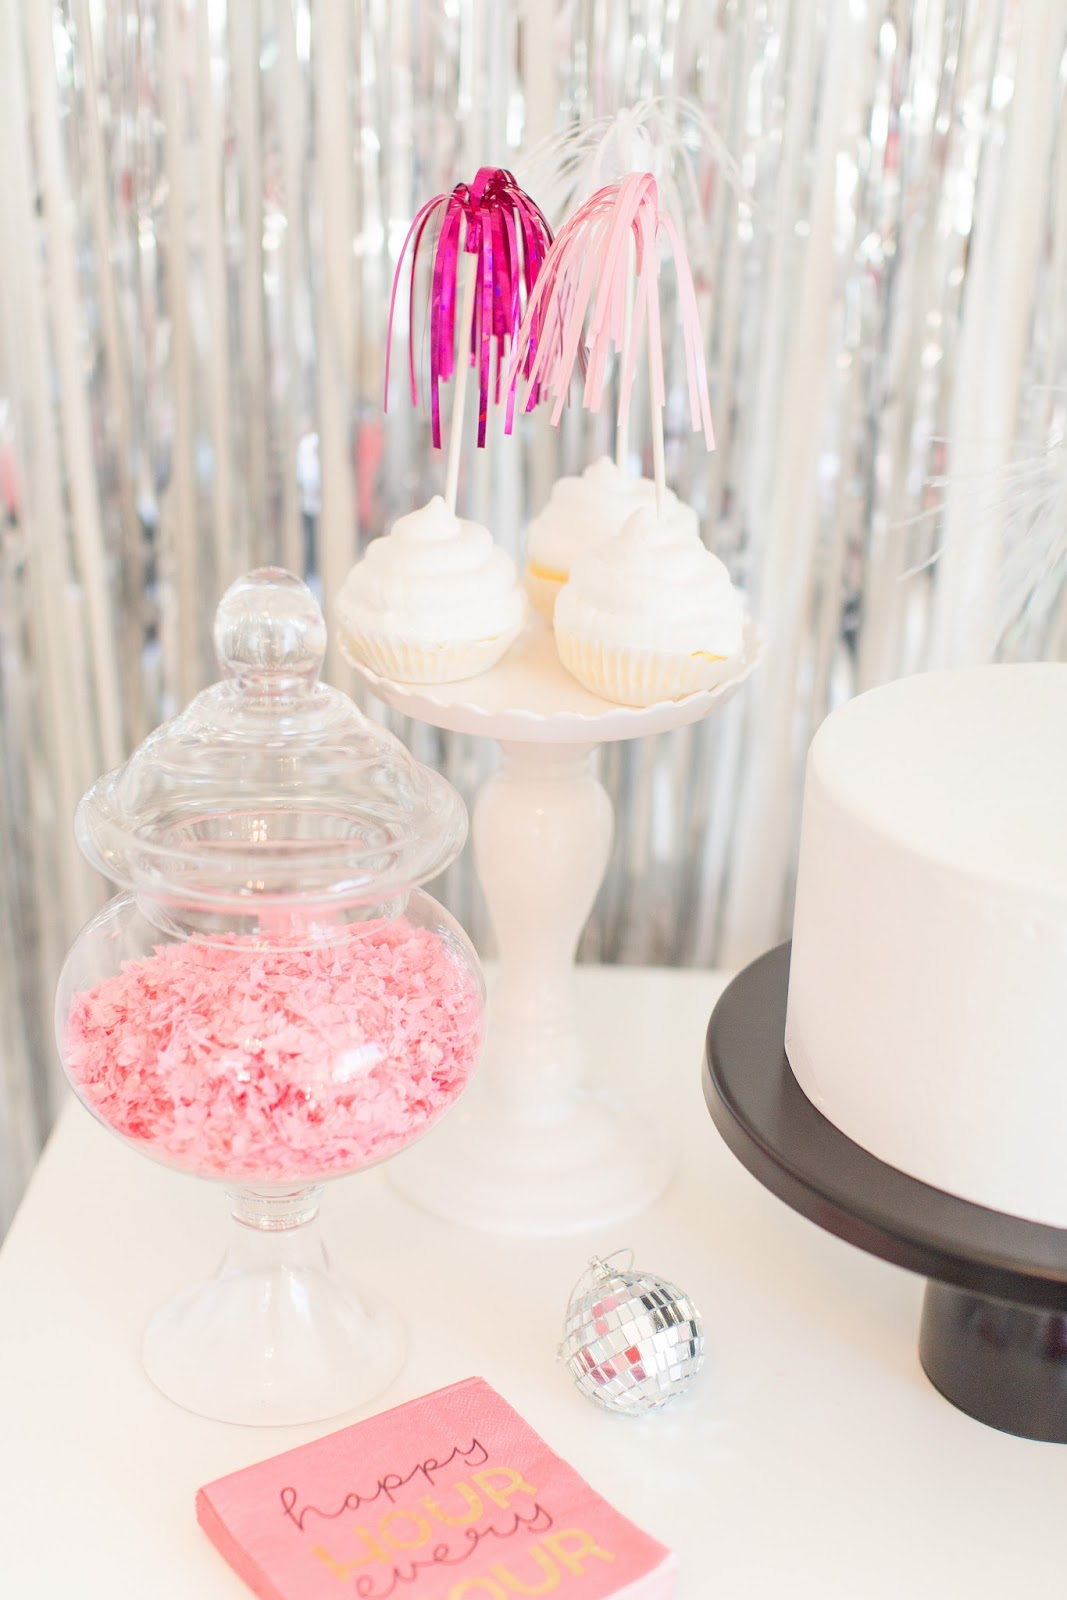 A Glam Sparkle and Shine Party by popular South Florida lifestyle blogger Celebration Stylist